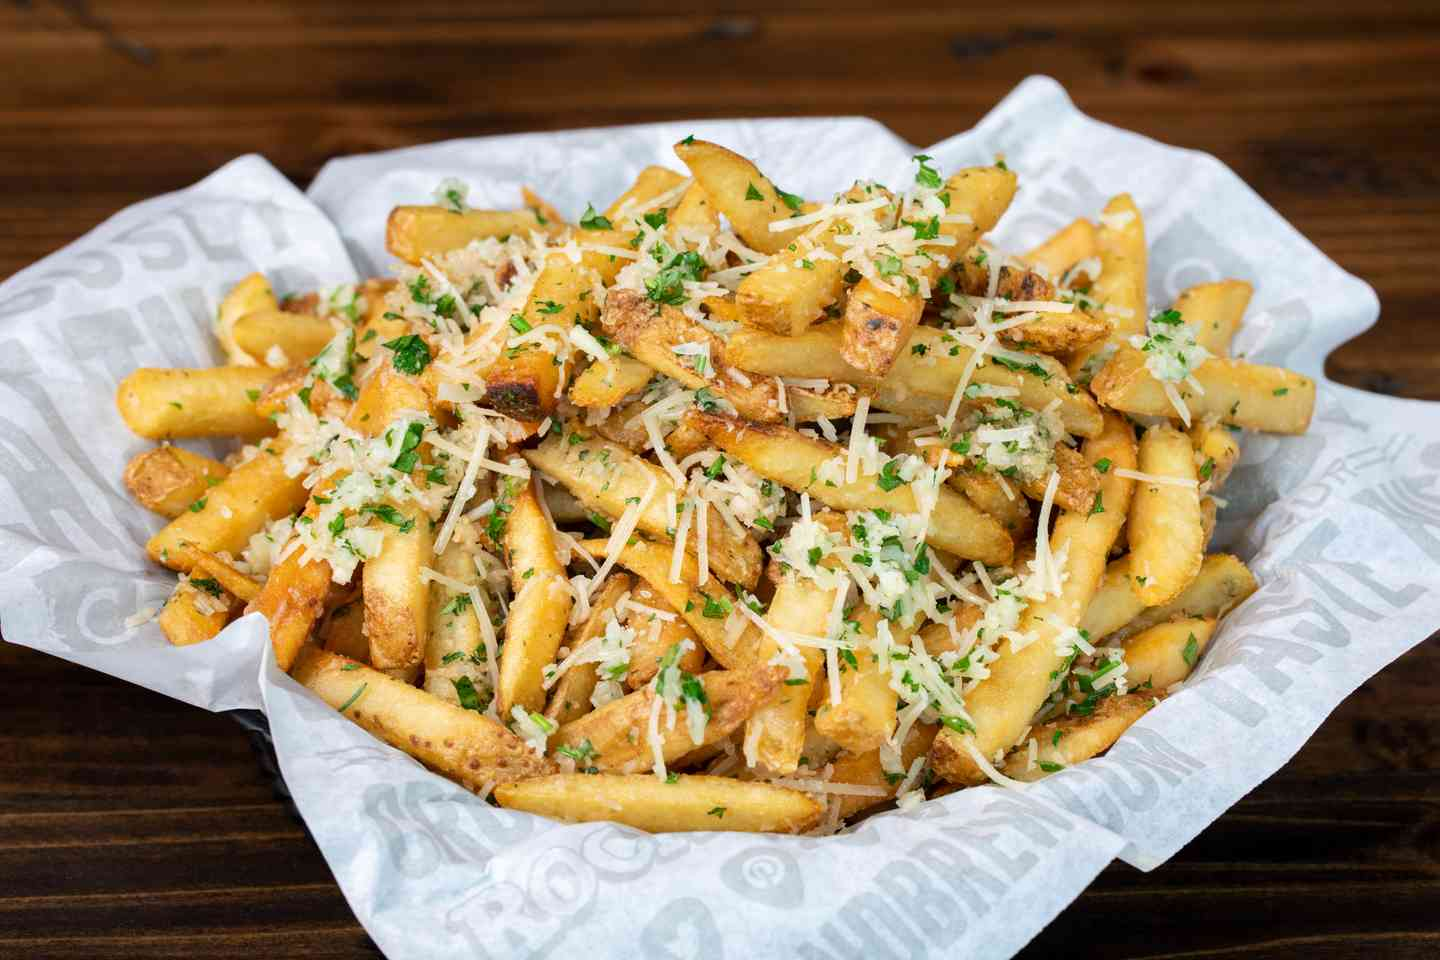 Garlic Parm Fries